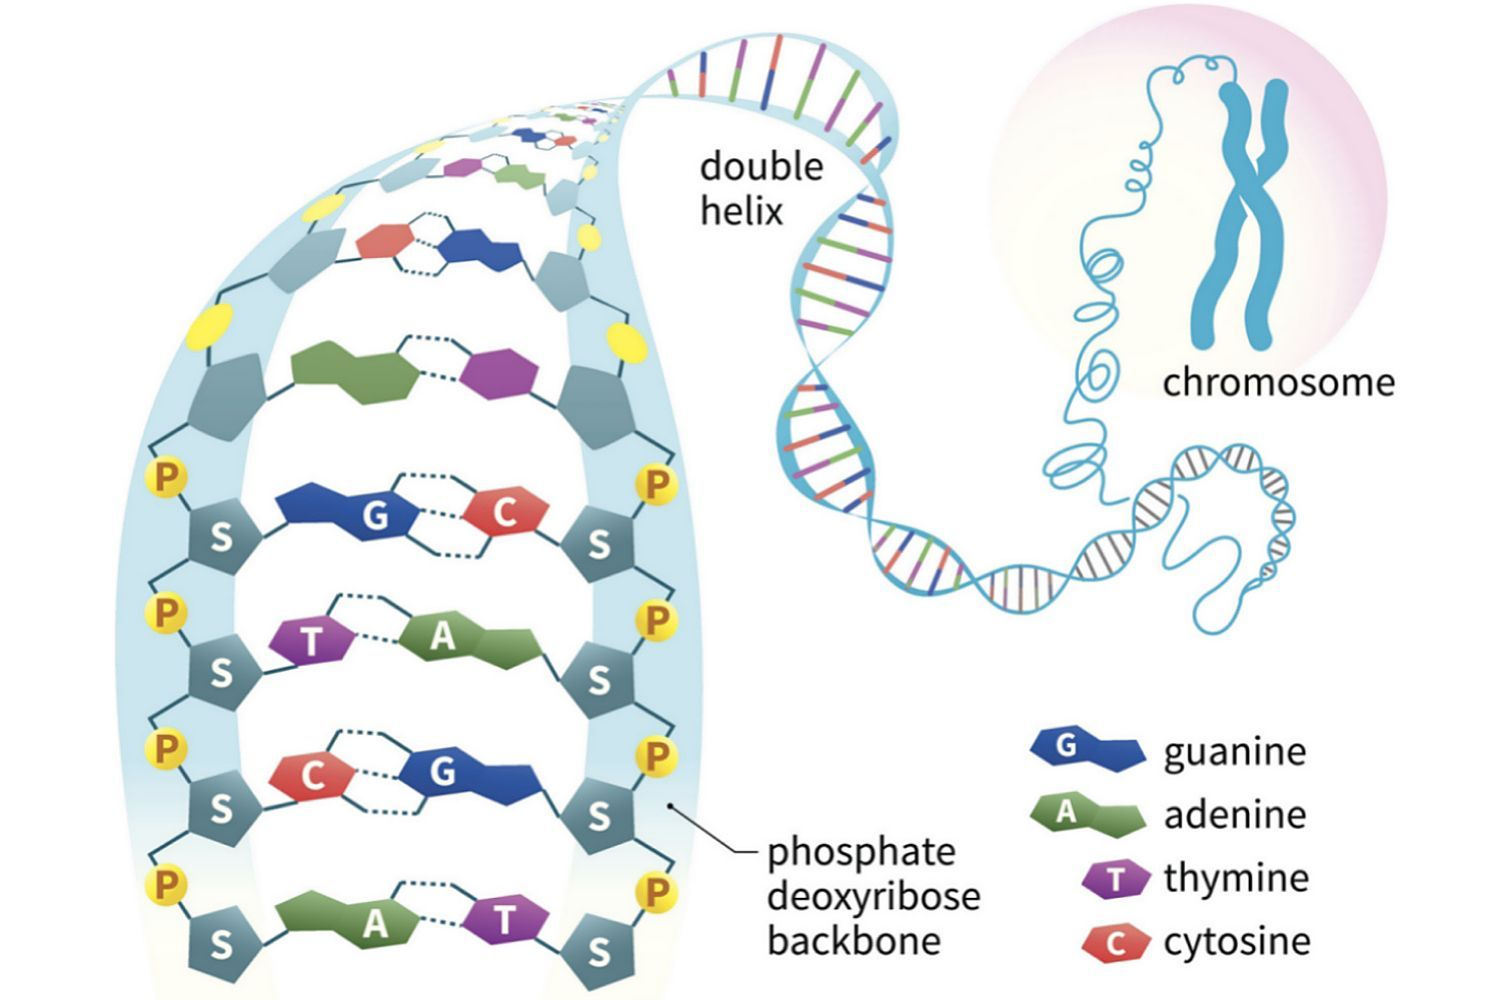 Learn About Nucleic Acids, Their Function, Examples, and